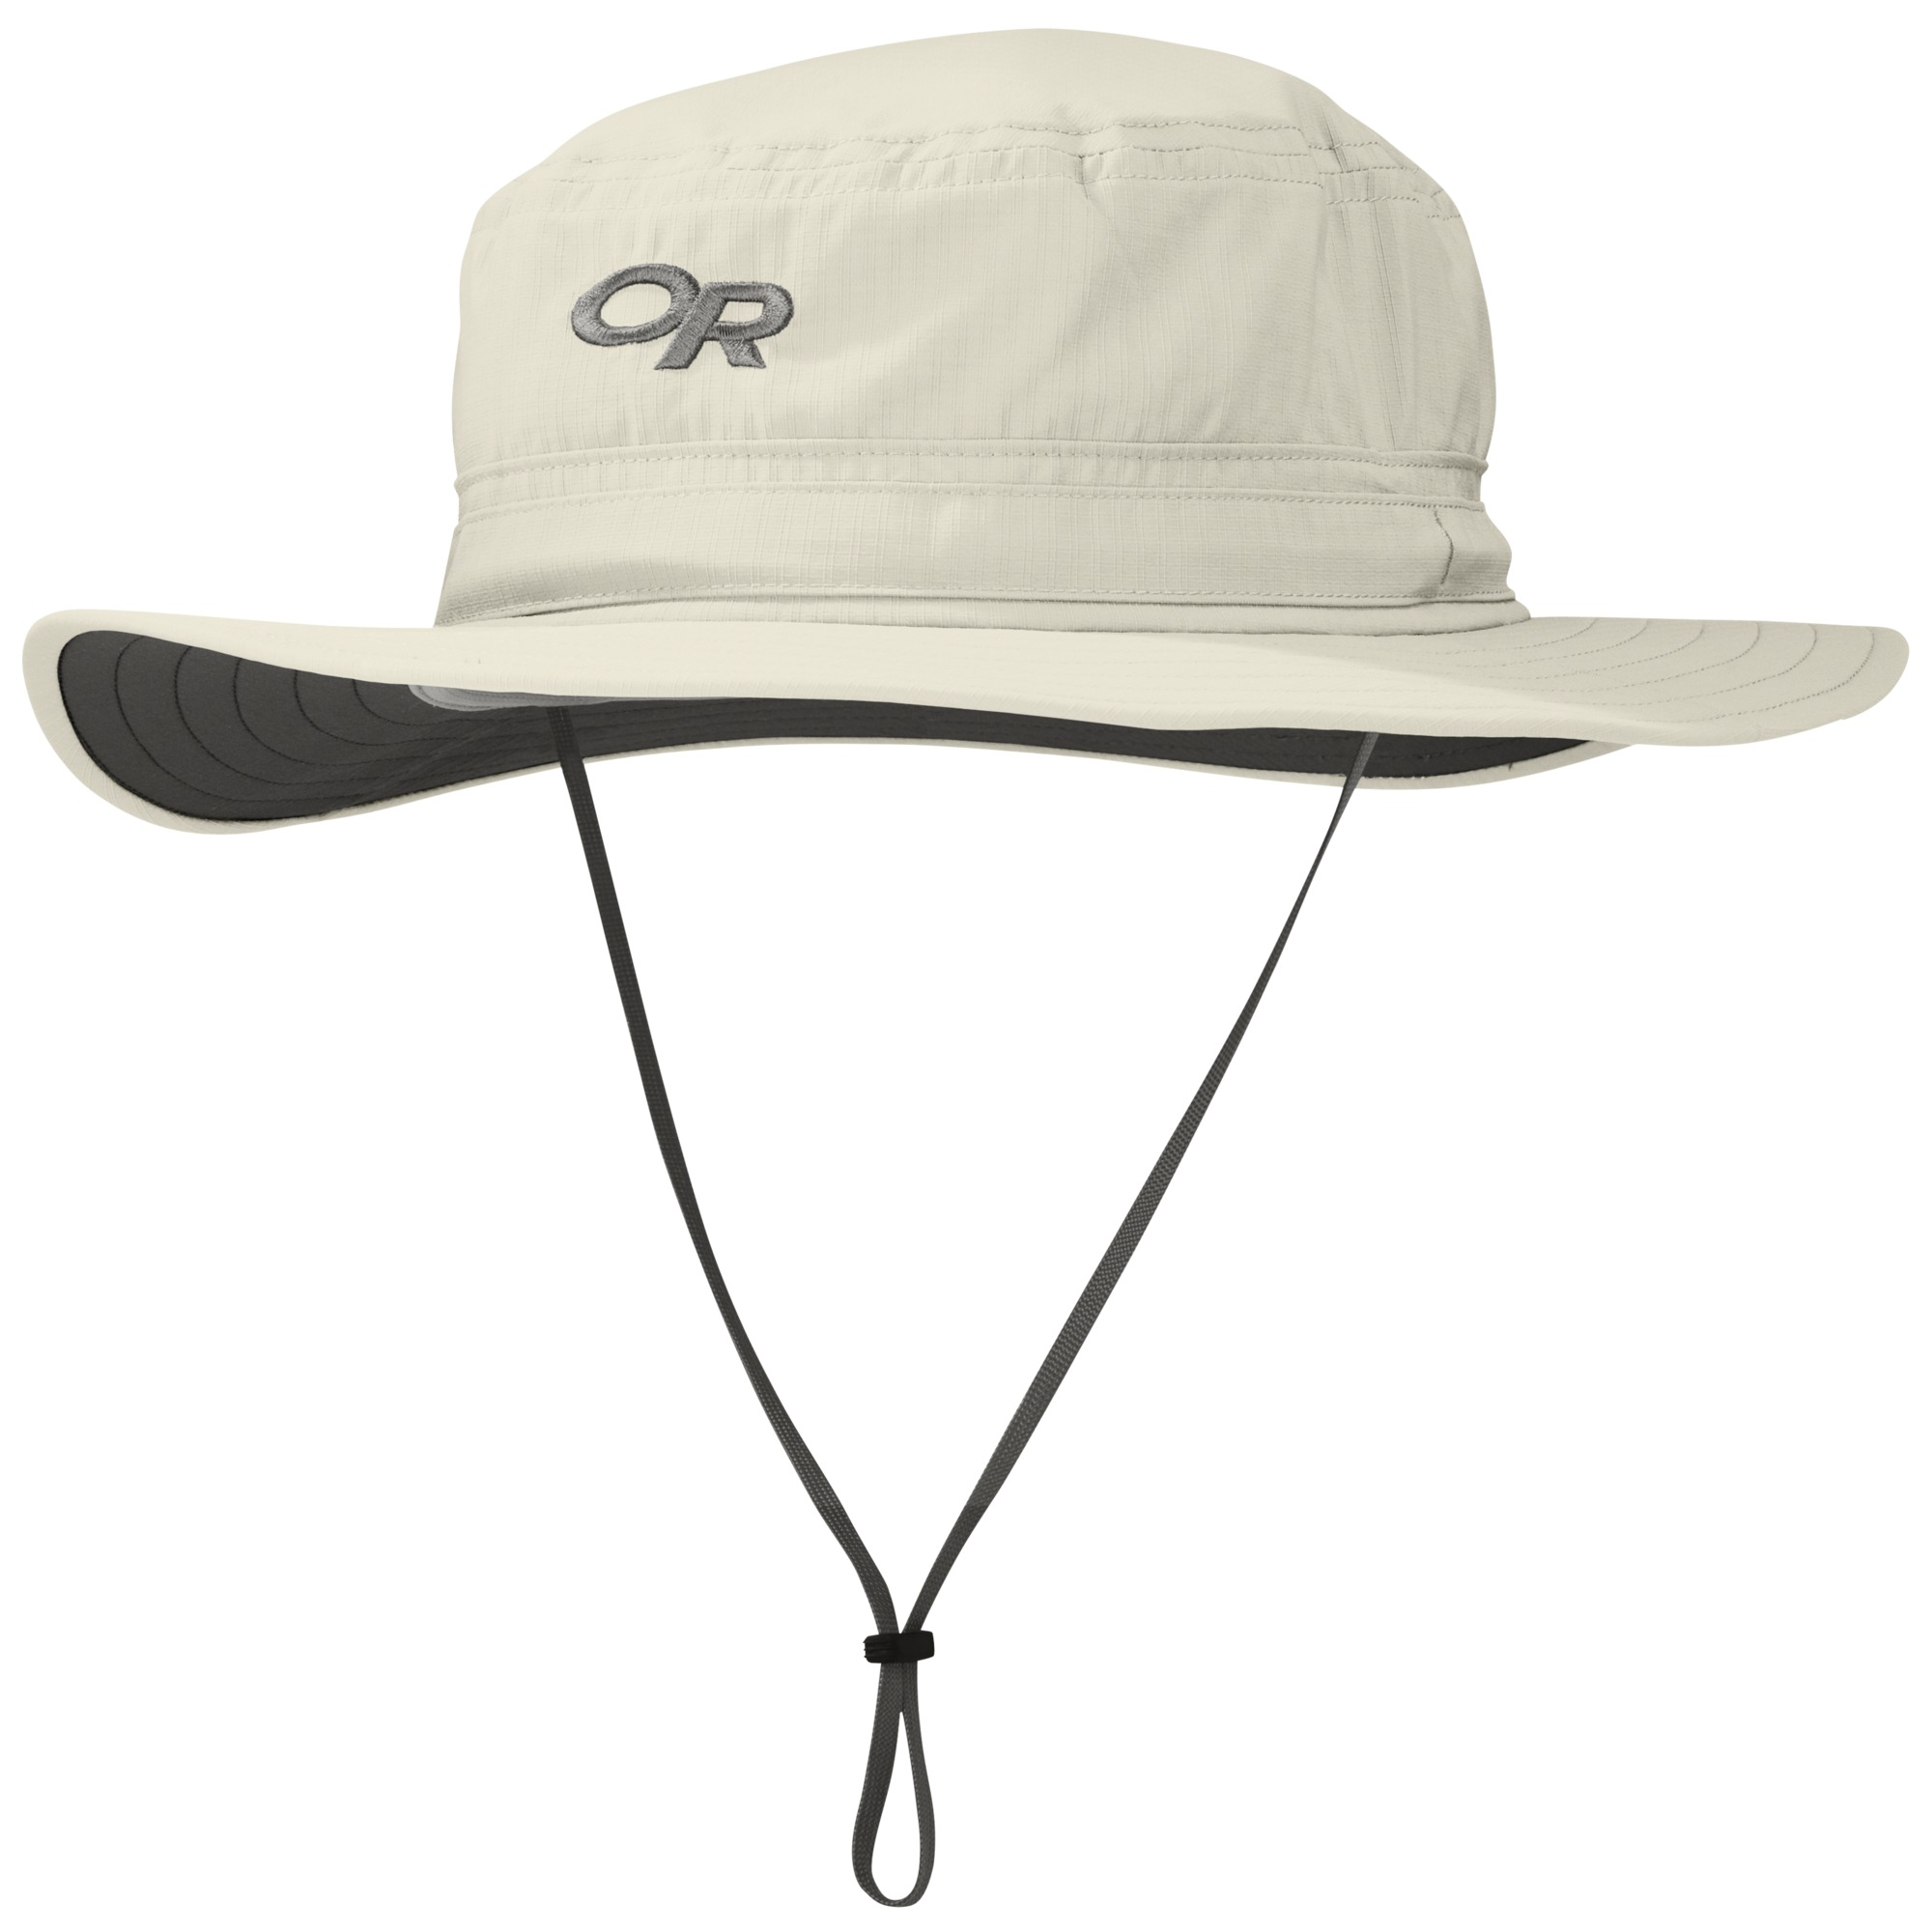 ab7a4fd3 Helios Sun Hat - sand | Outdoor Research